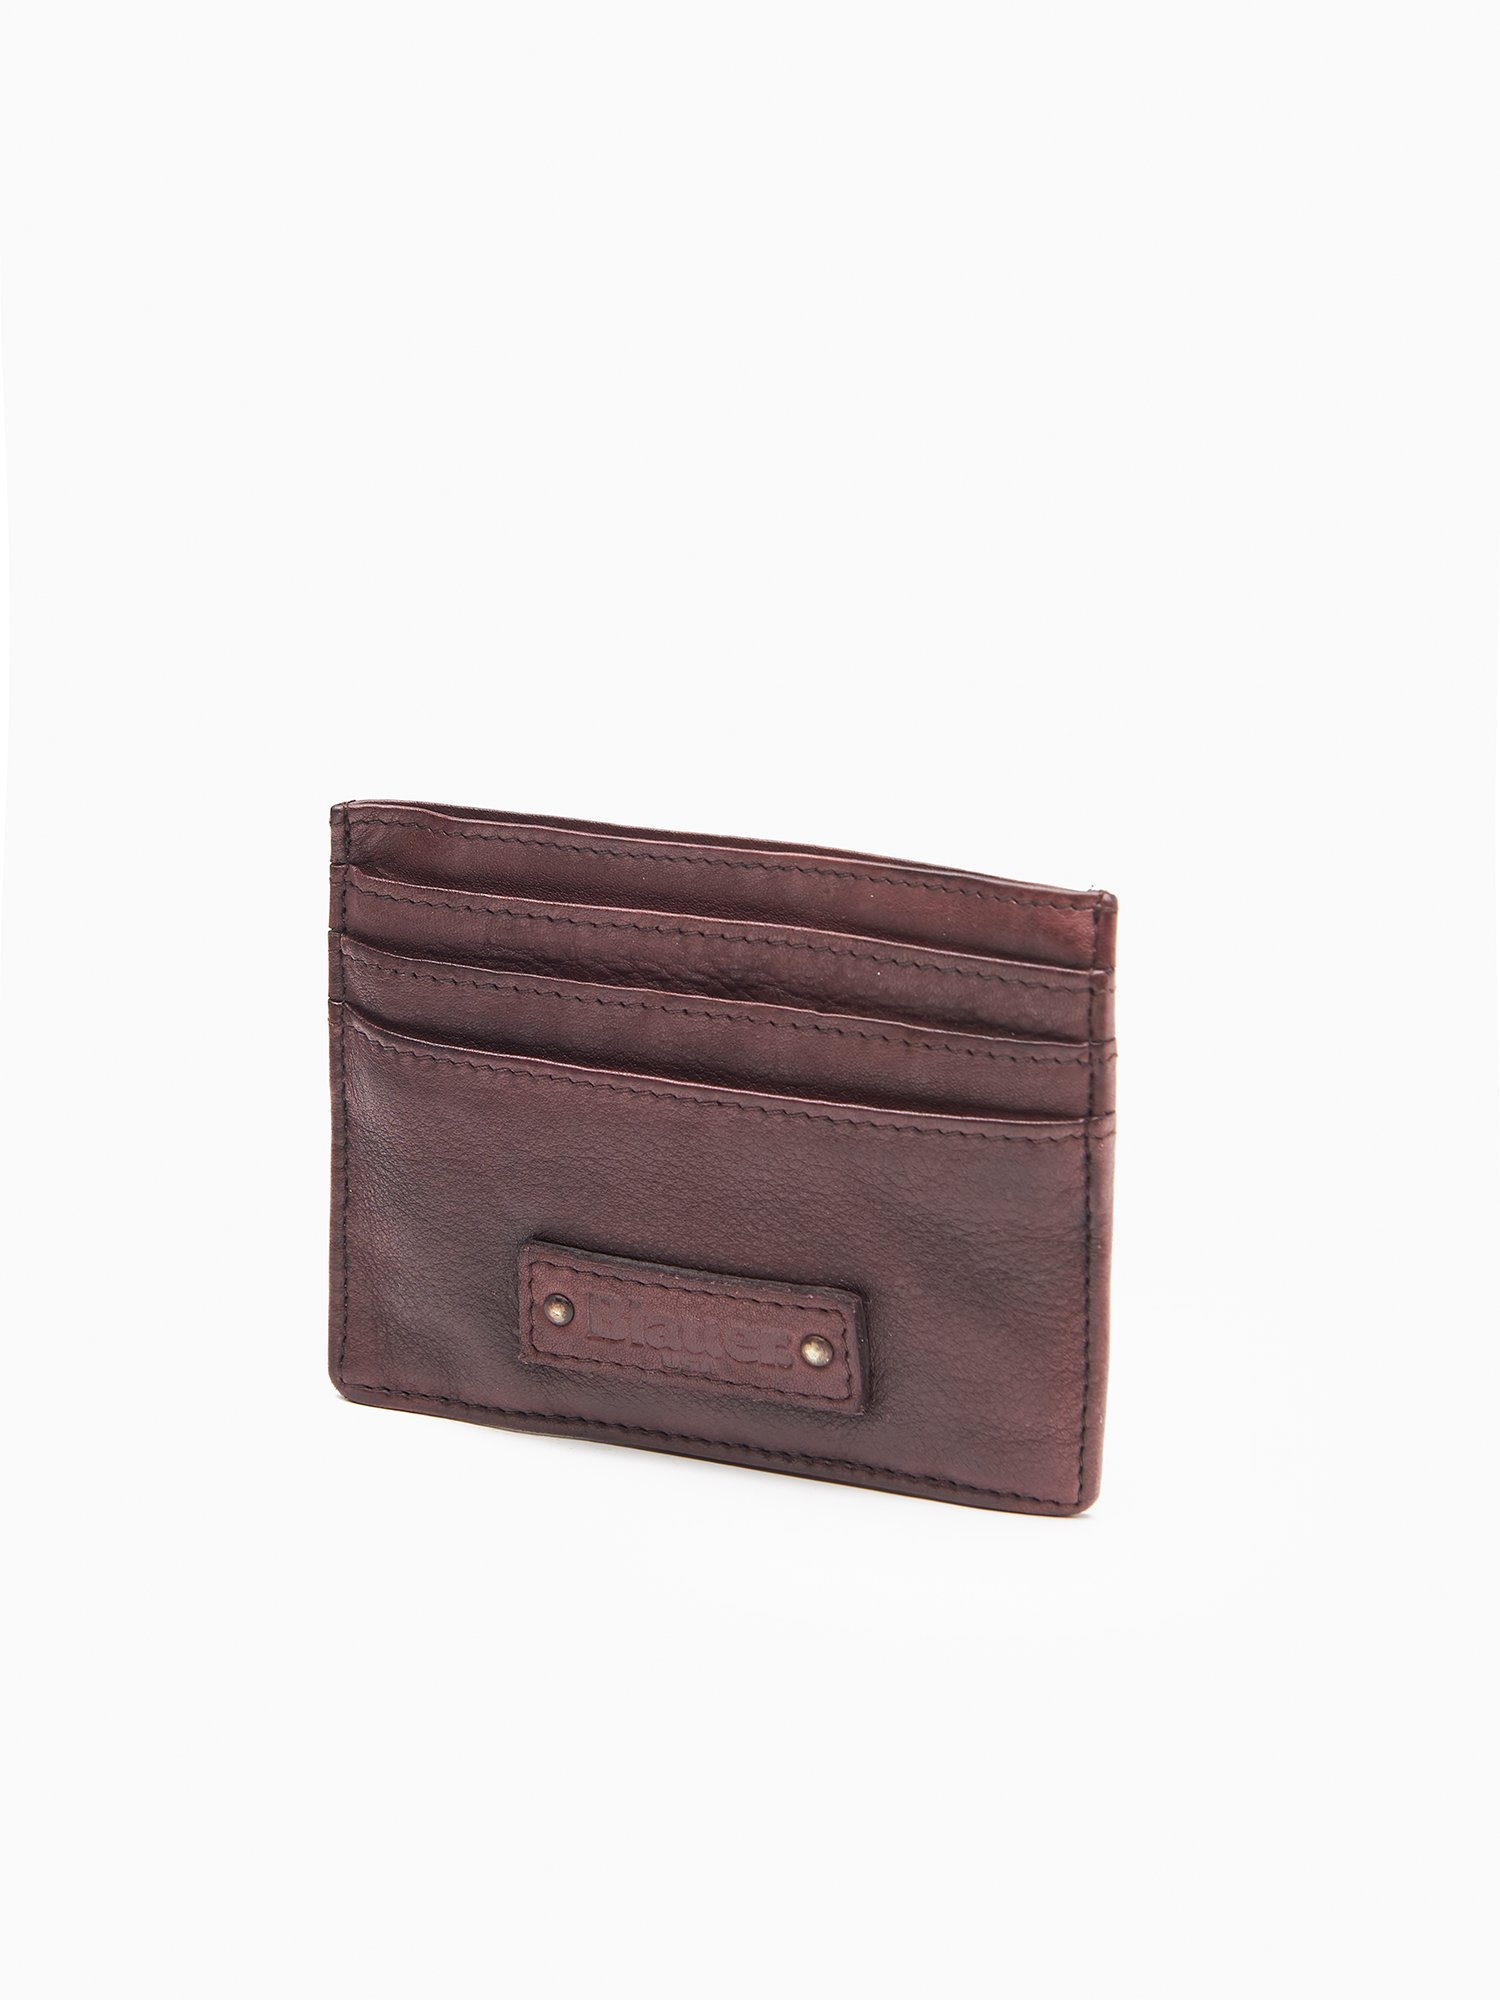 RIVY CREDIT CARD HOLDER - Blauer